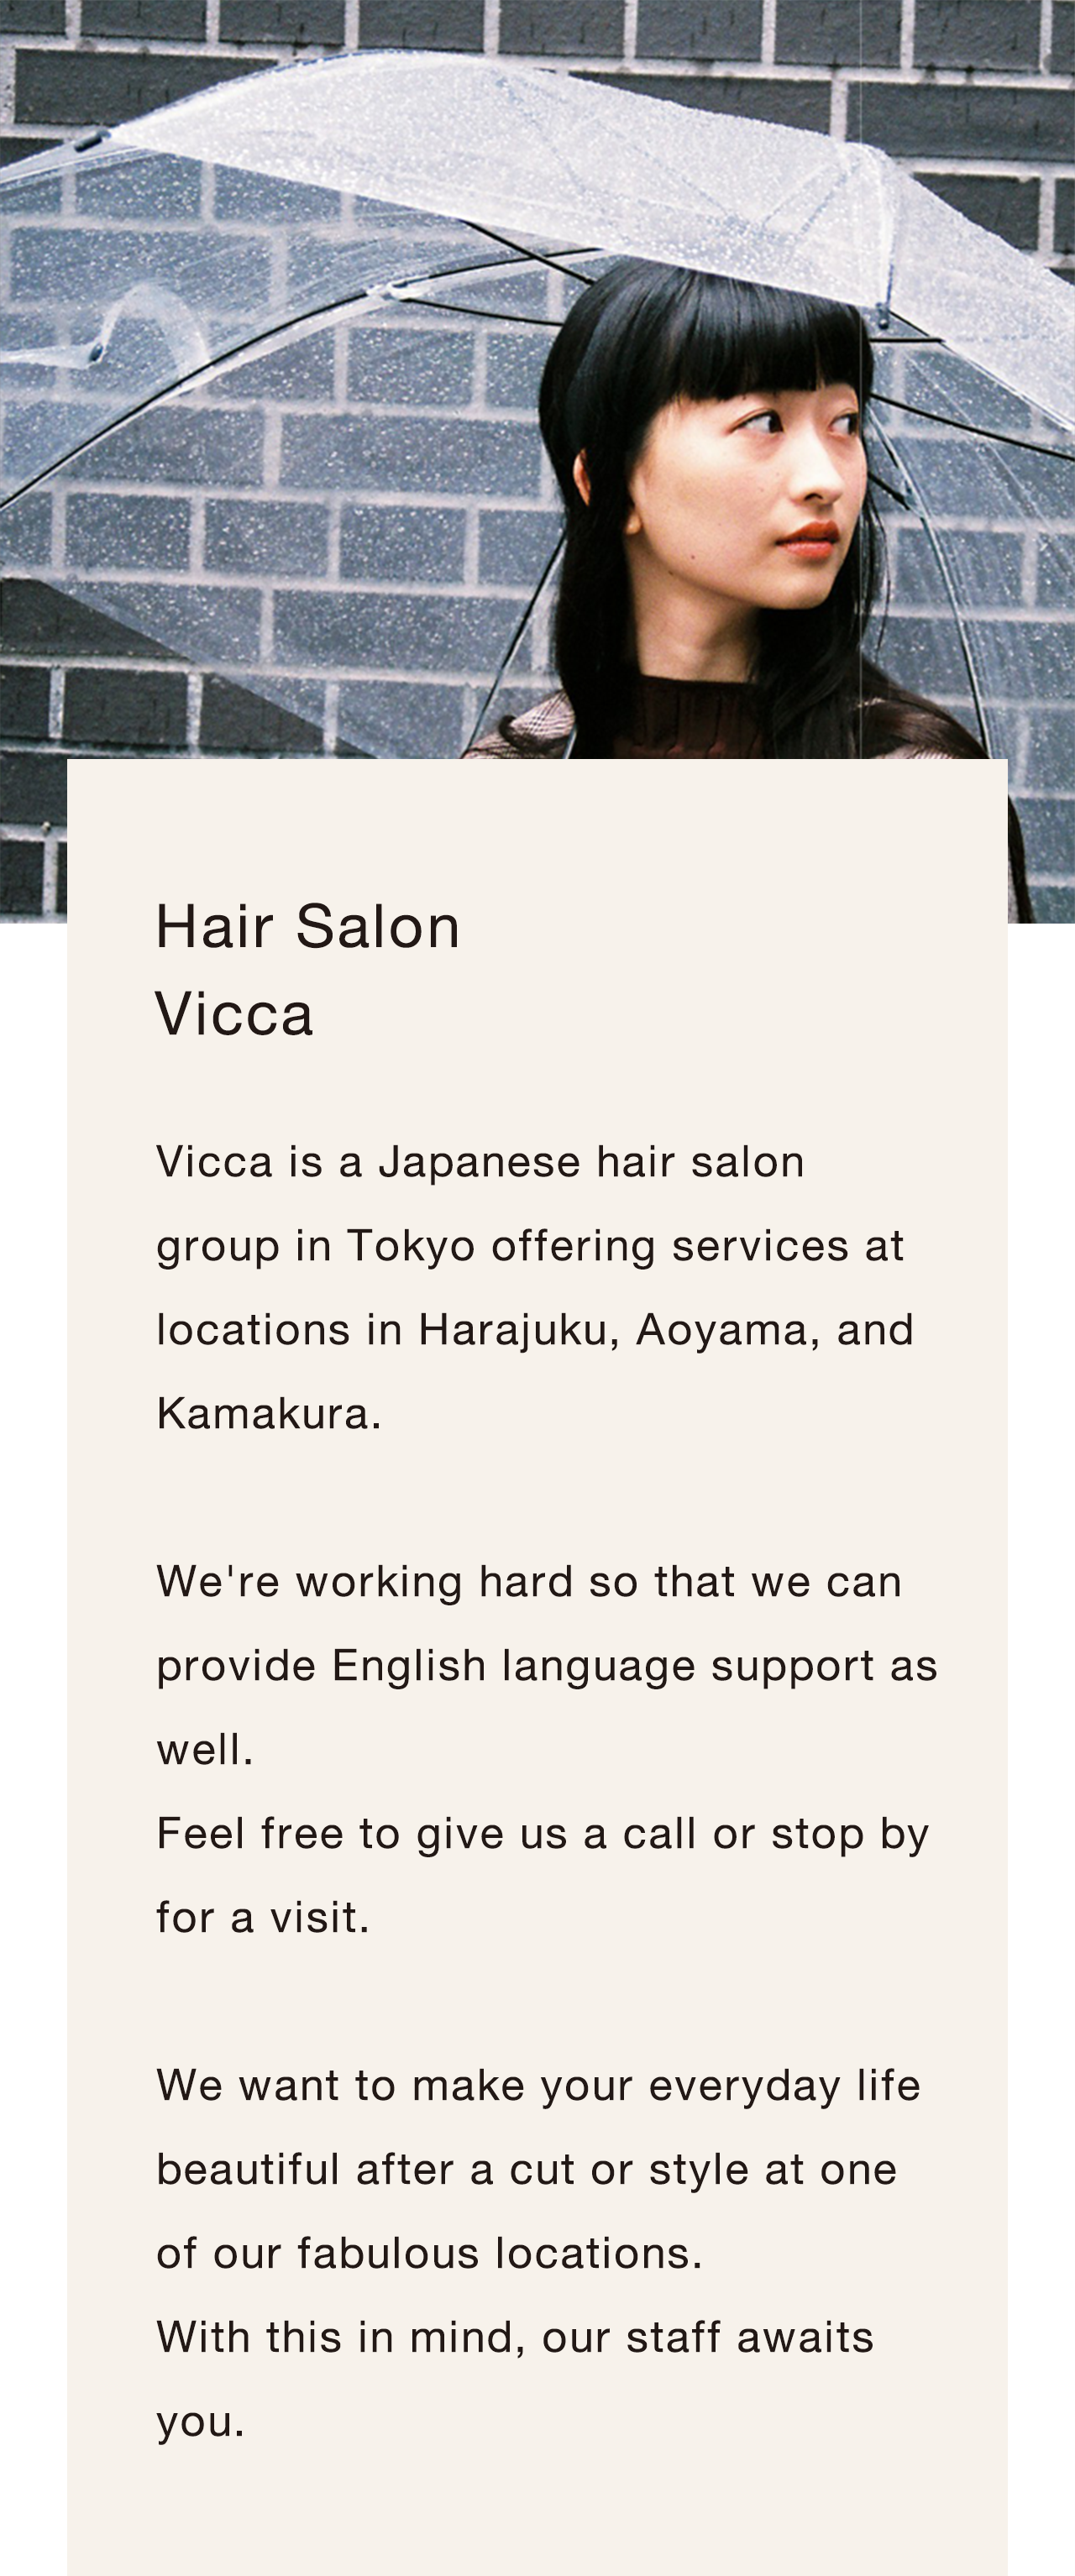 Vicca is a Japanese hair salon group in Tokyooffering services at locations in Harajuku, Aoyama, and Kamakura.We're working hard so that we can provide English language support as well.Feel free to give us a call or stop by for a visit.We want to make your everyday life beautiful after a cut or style at one of our fabulous locations.With this in mind, our staff awaits you.